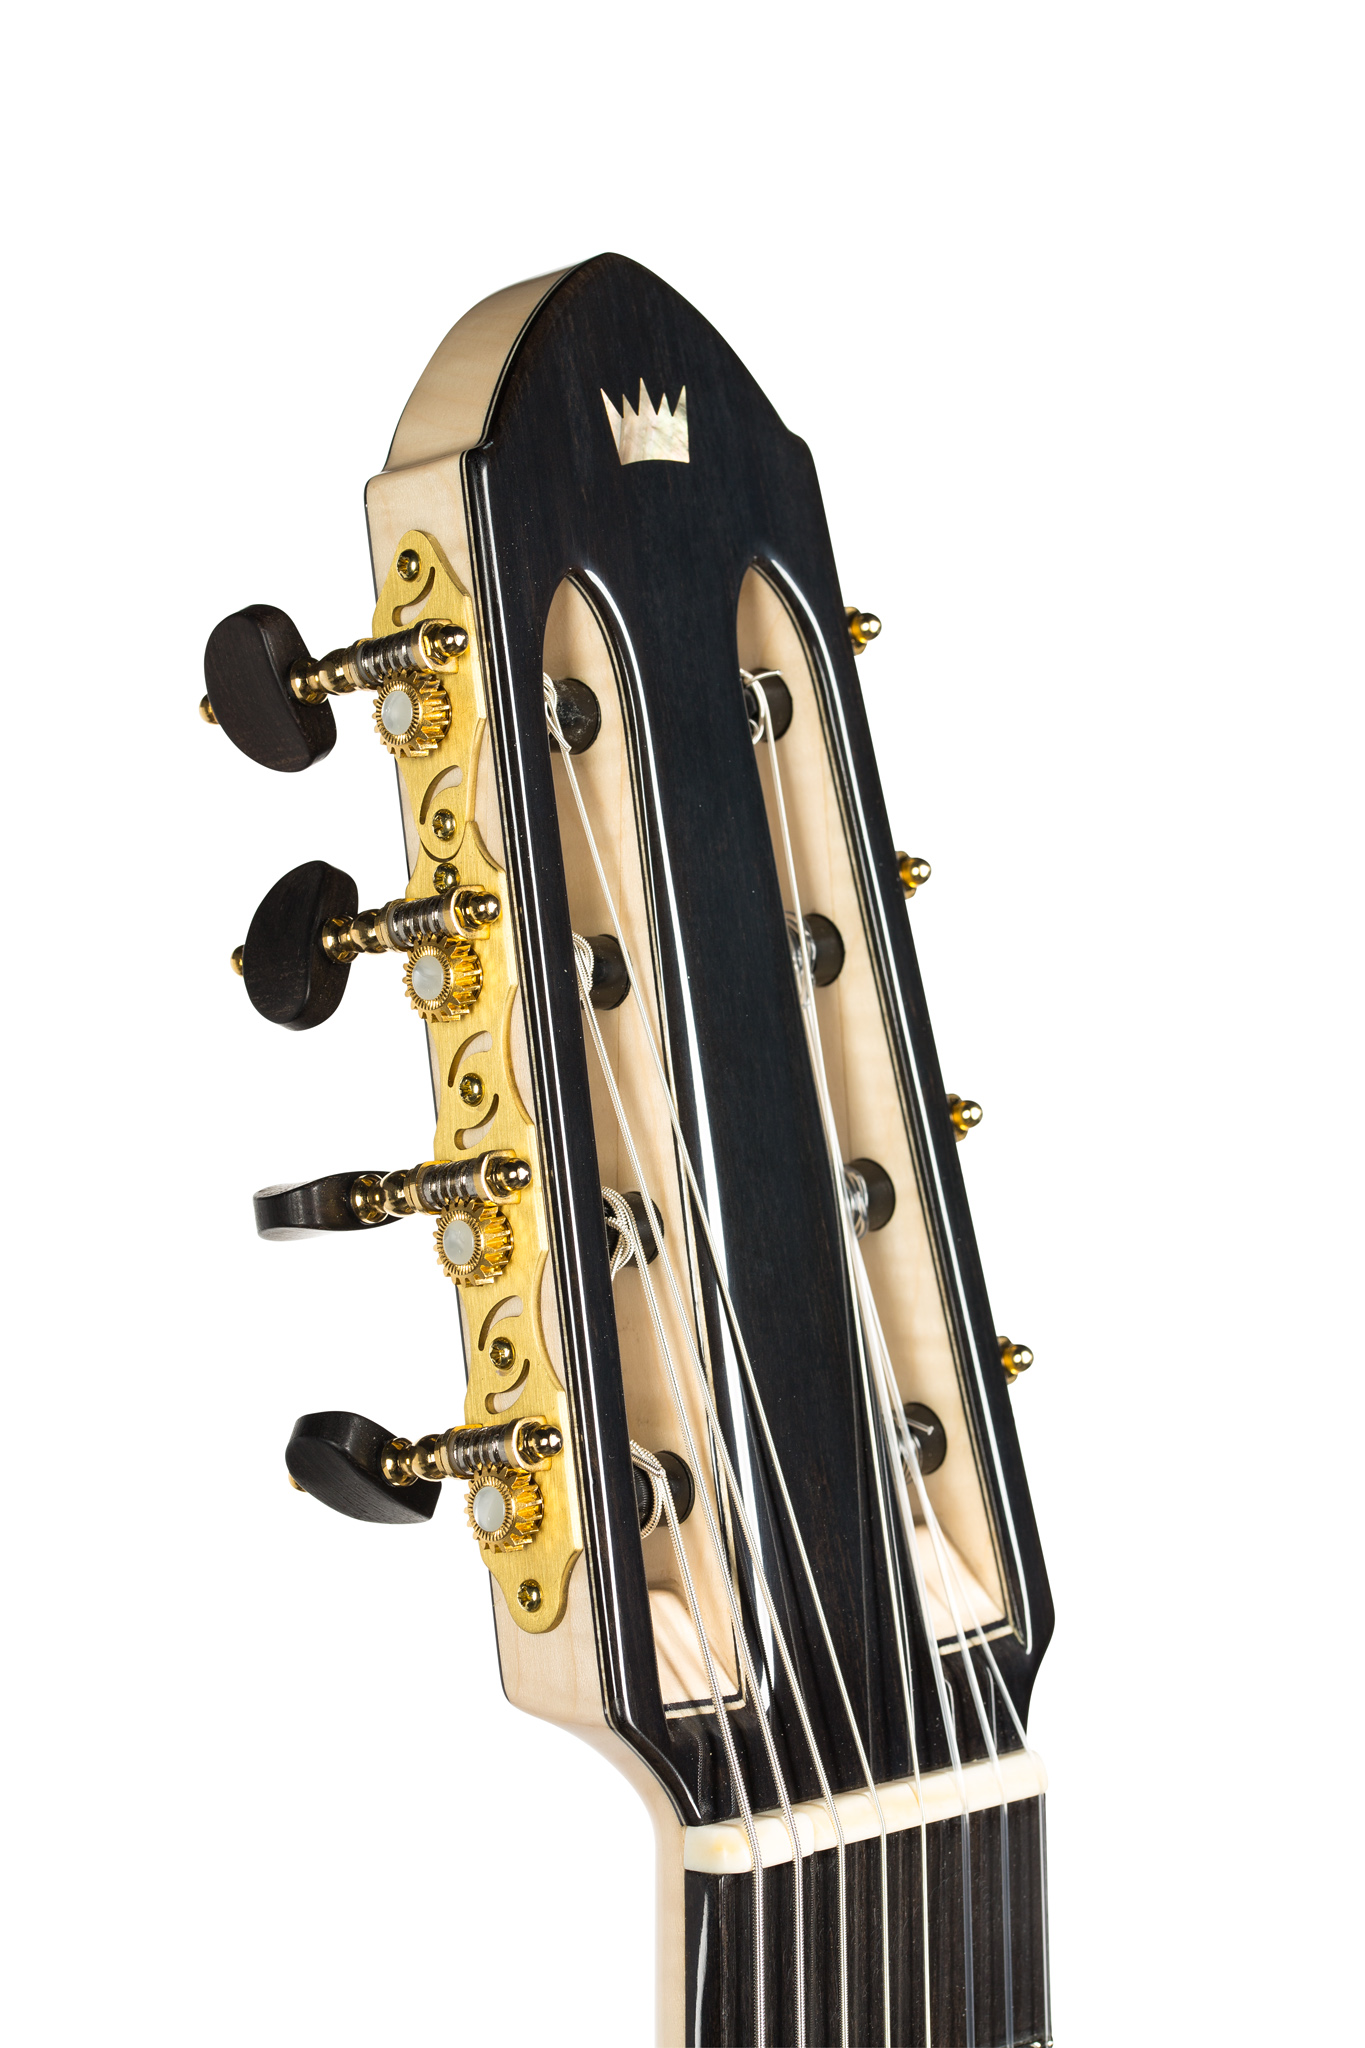 8-string classical guitar headstock